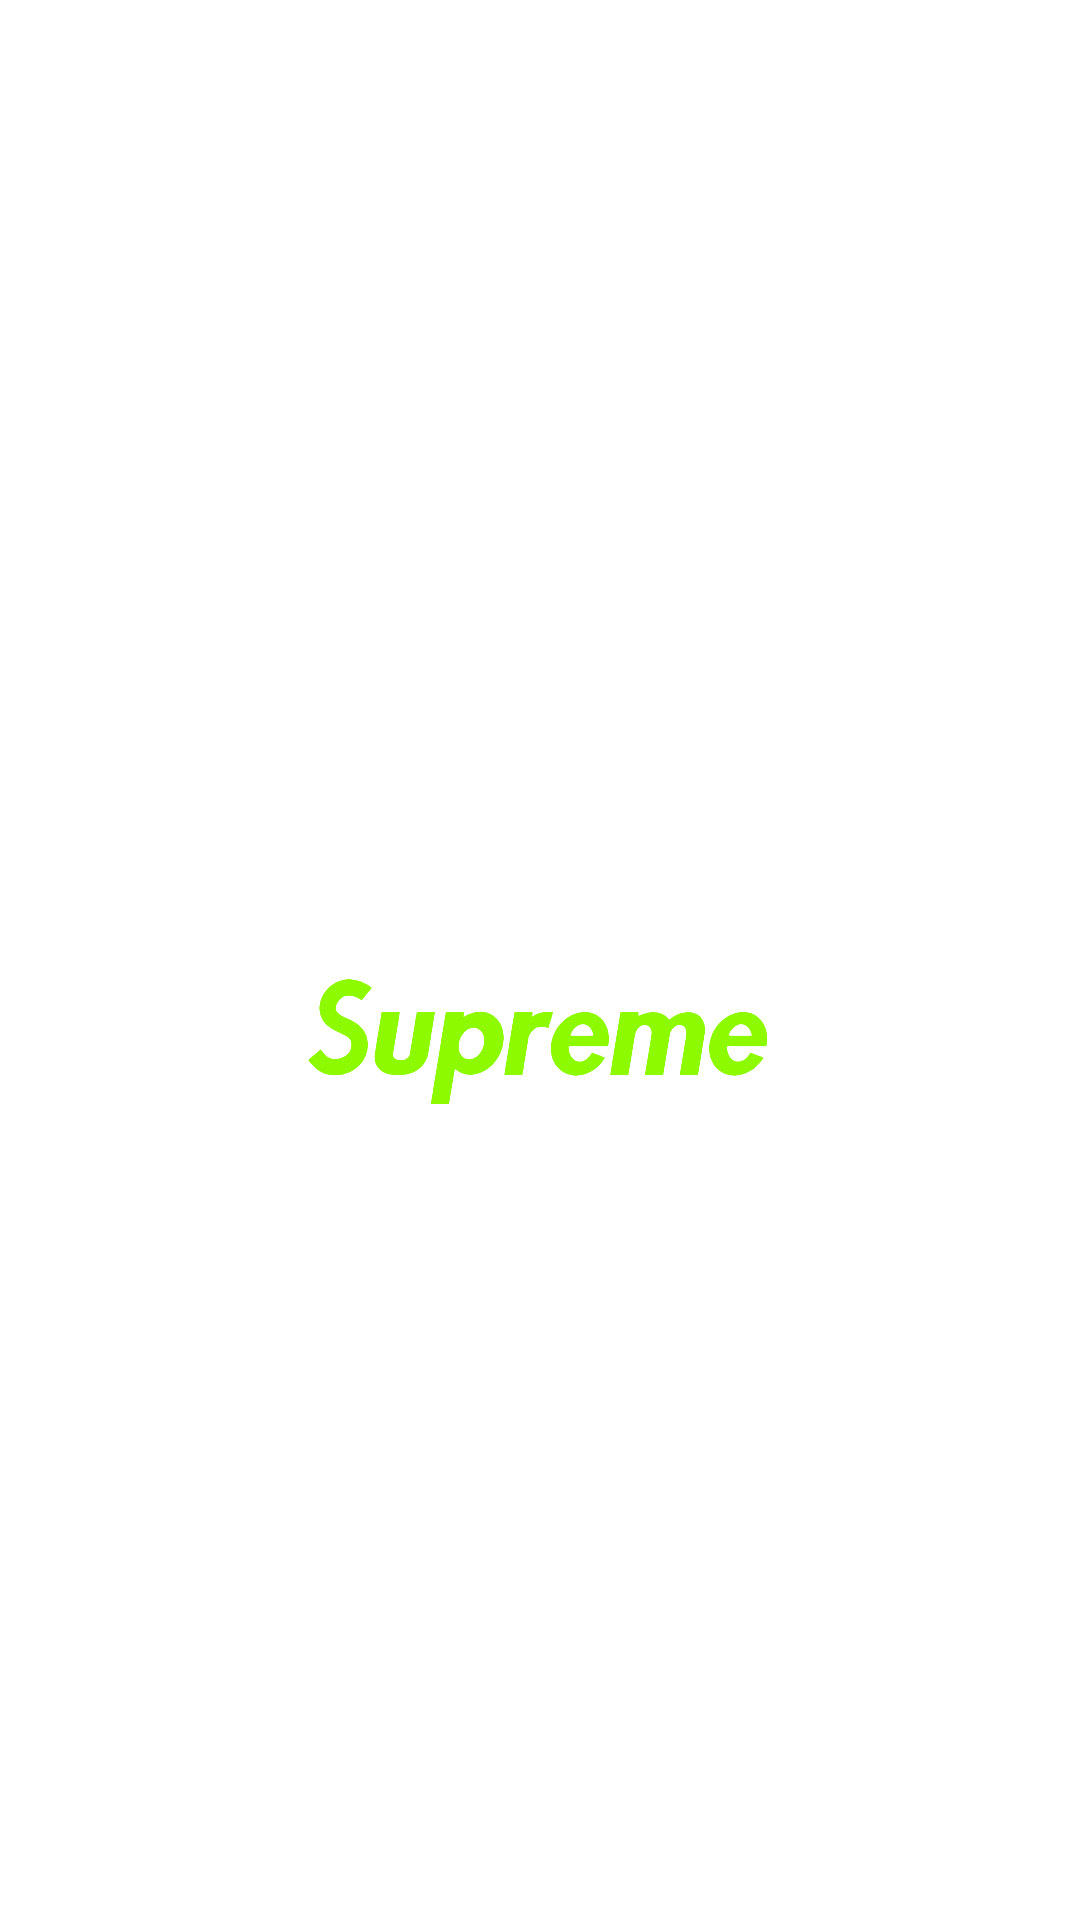 supreme13 - 23 Supreme HQ Smartphone Wallpaper Collection